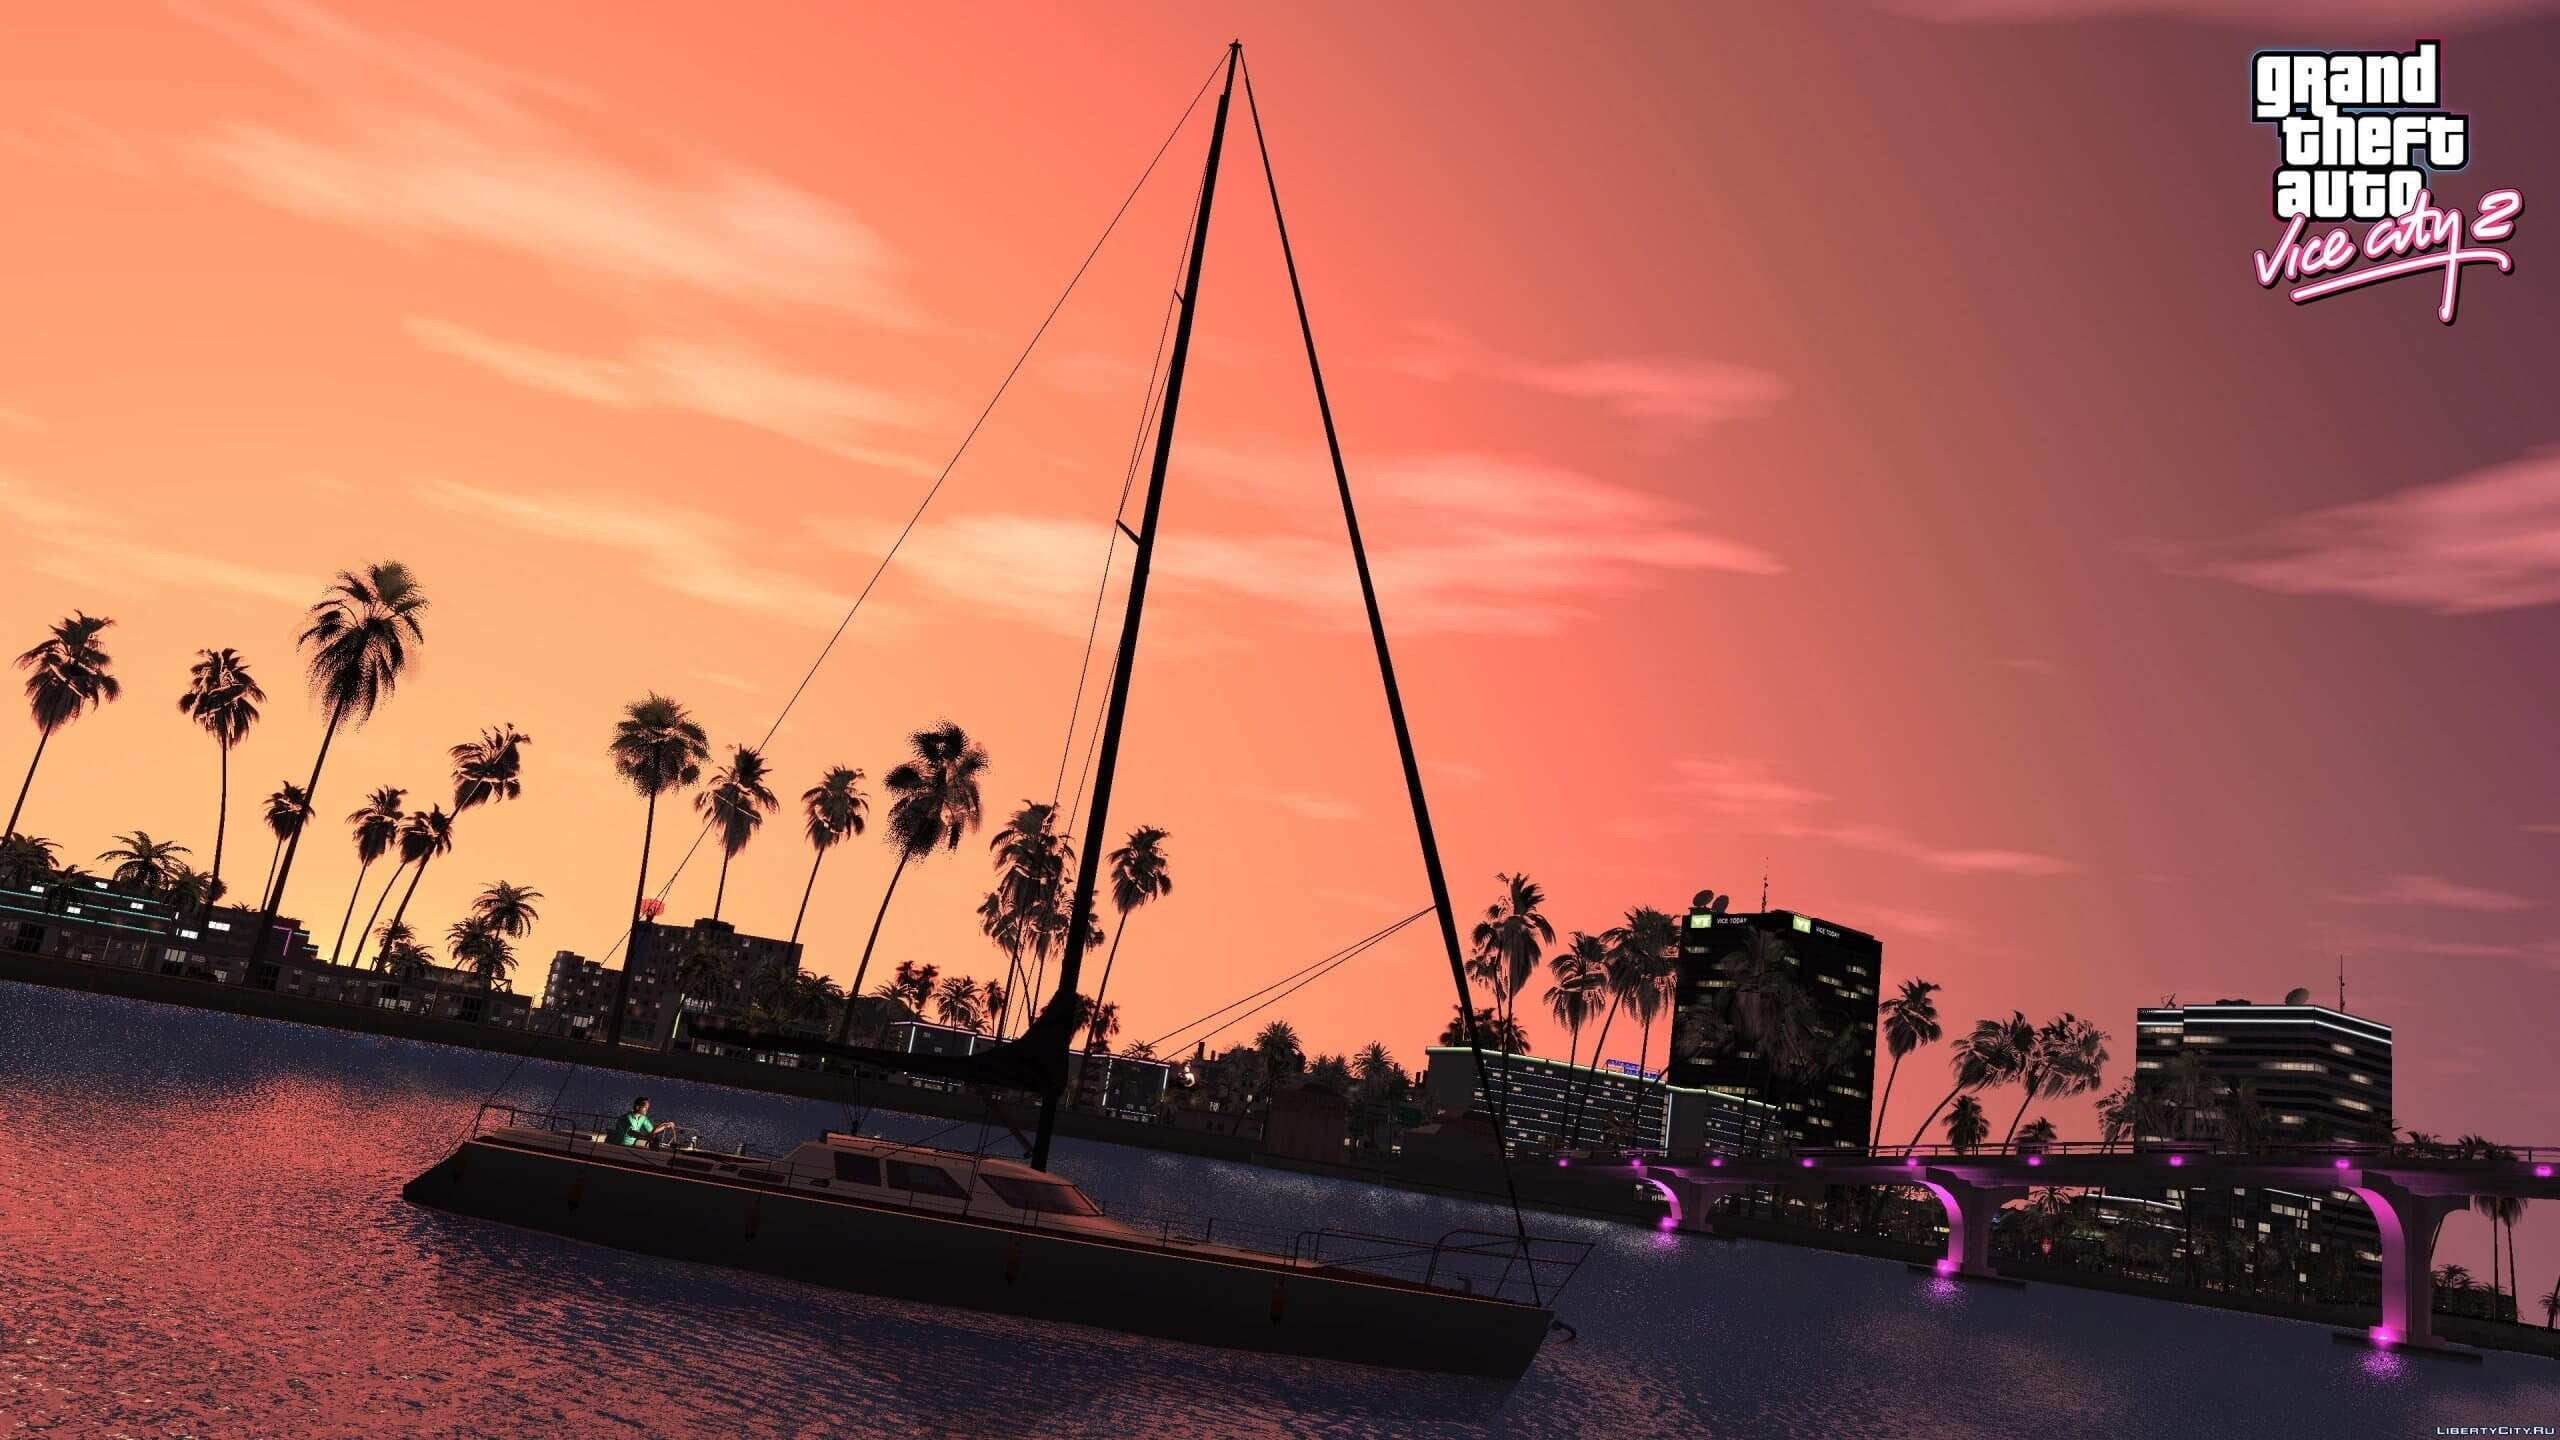 rermaster no oficial gta vice city 2grand theft auto 2 remaster scaled